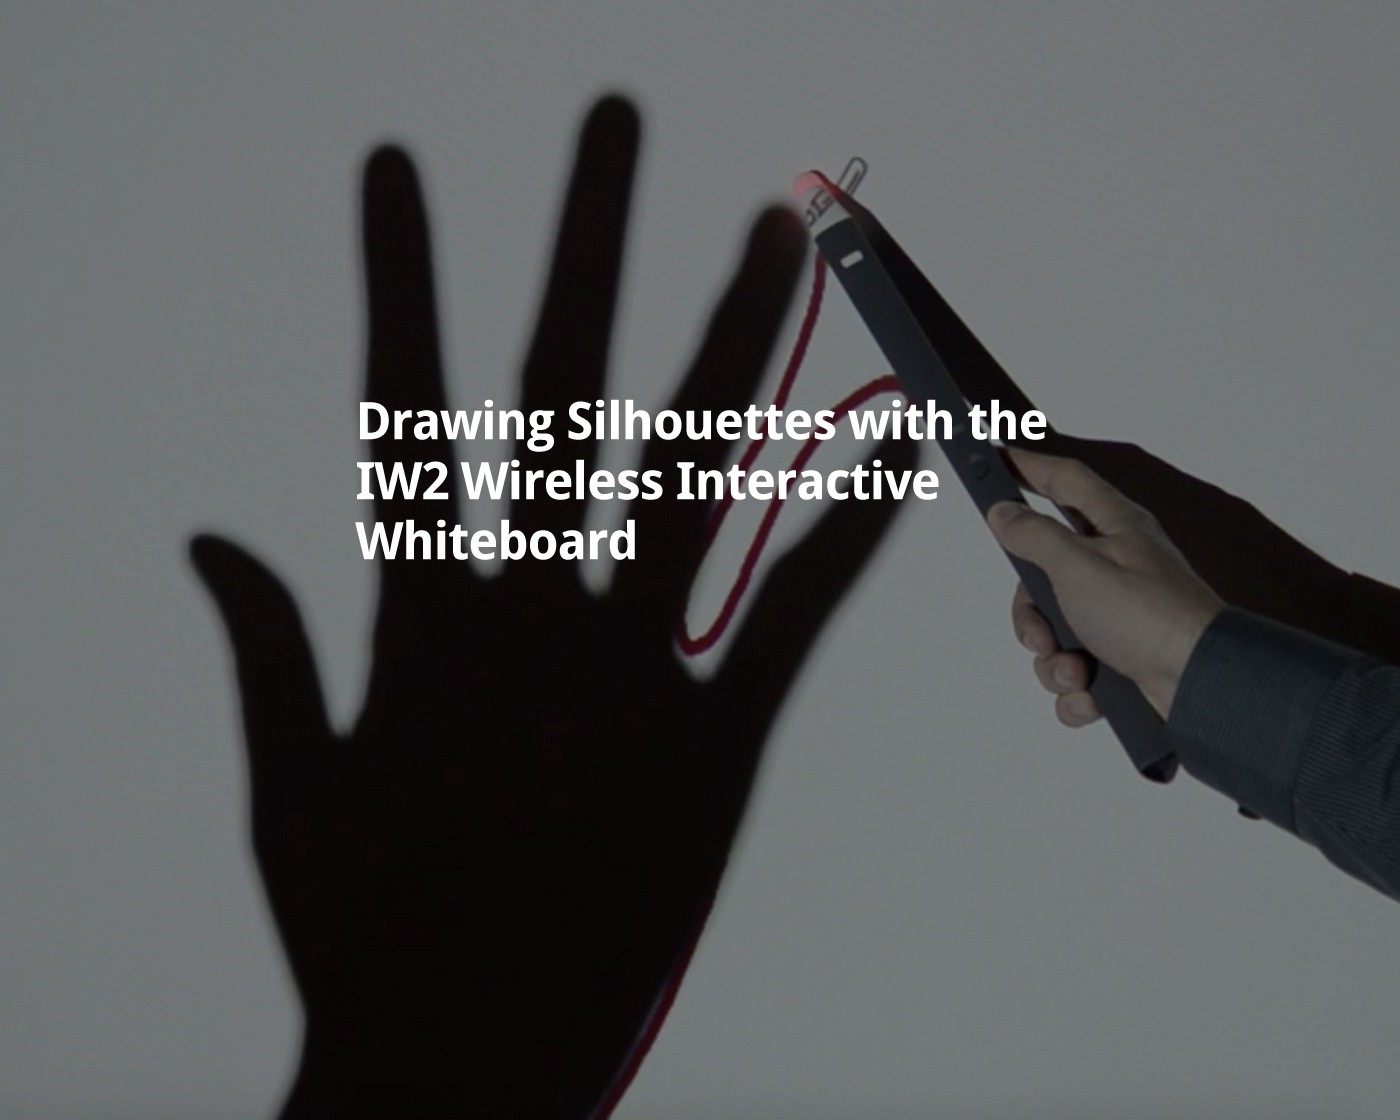 Drawing Silhouettes with the IW2 Wireless Interactive Whiteboard